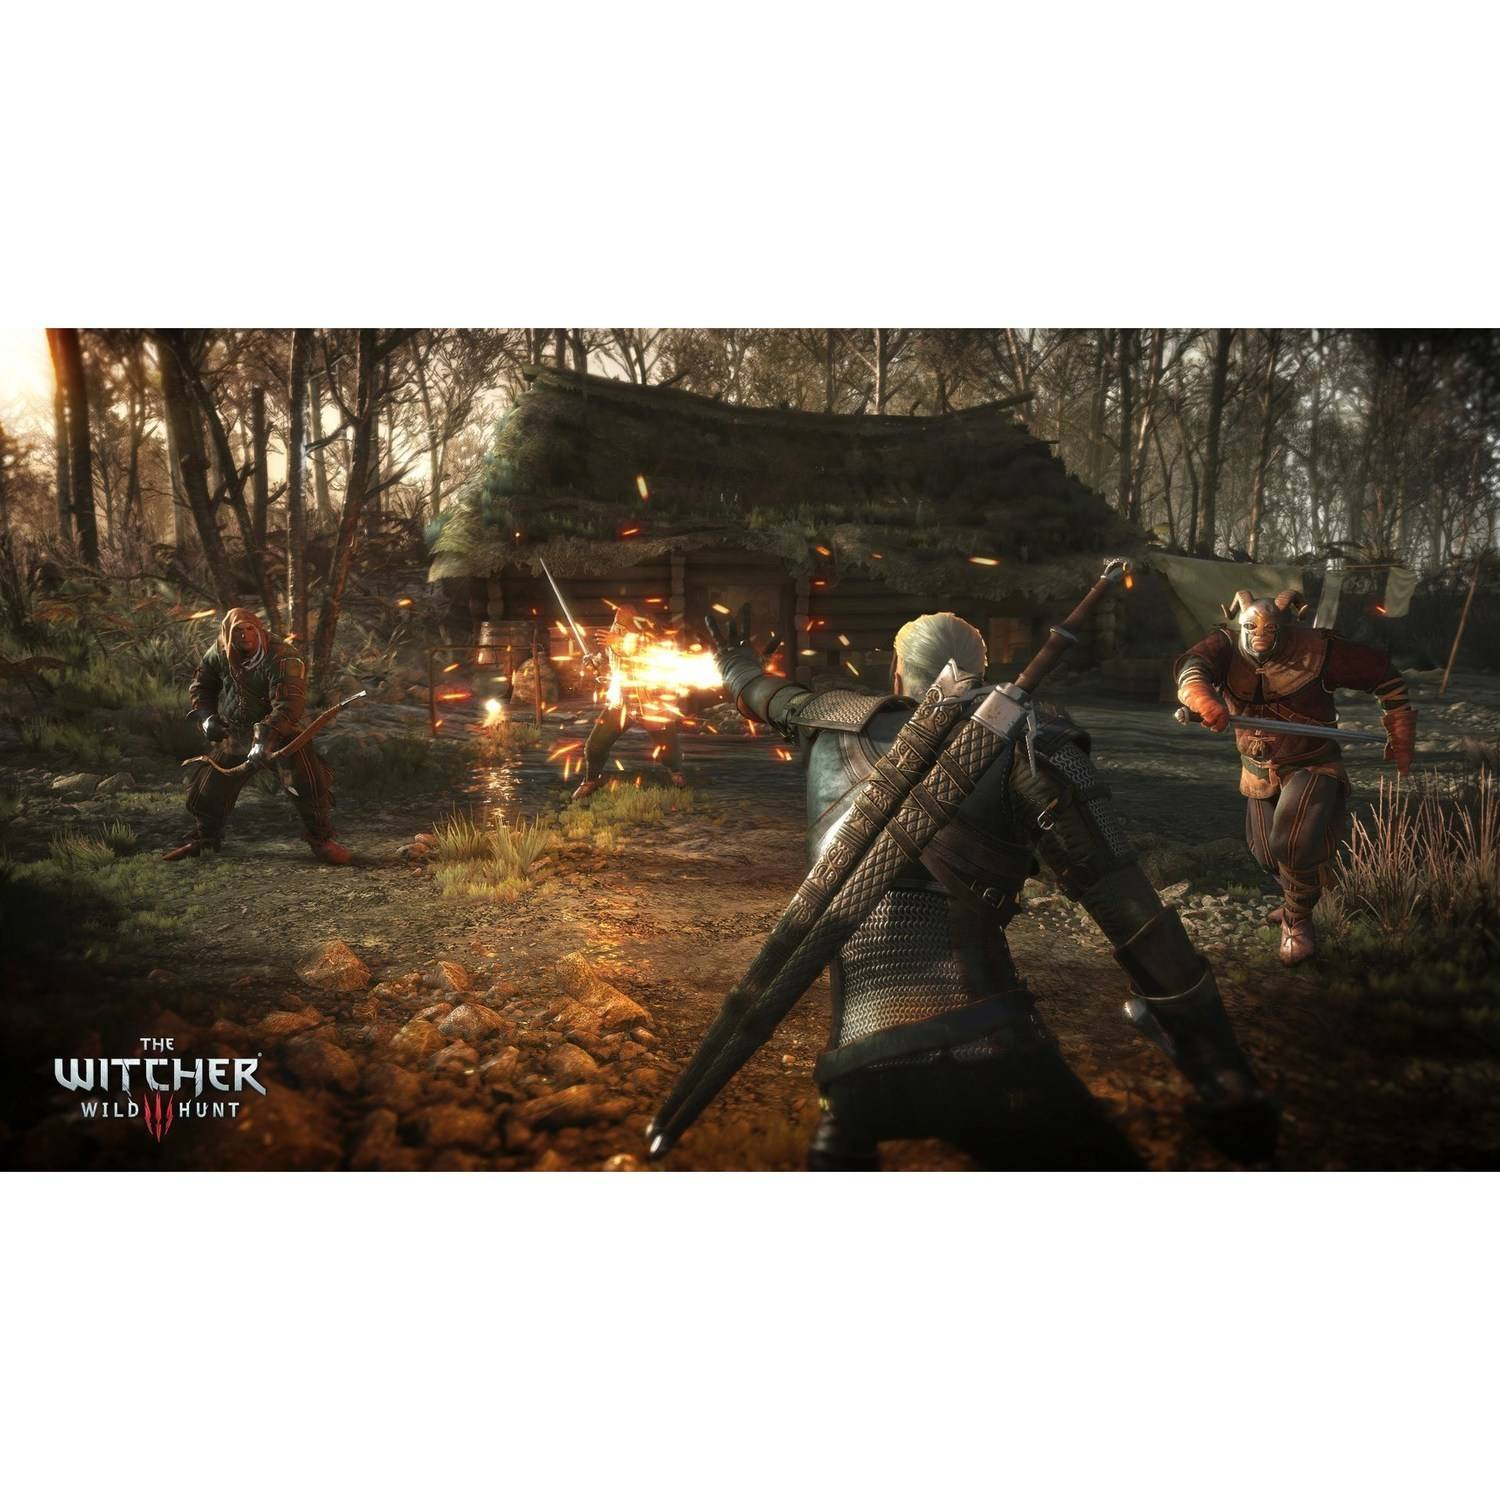 The Witcher 3: Wild Hunt Complete Edition, Warner Bros